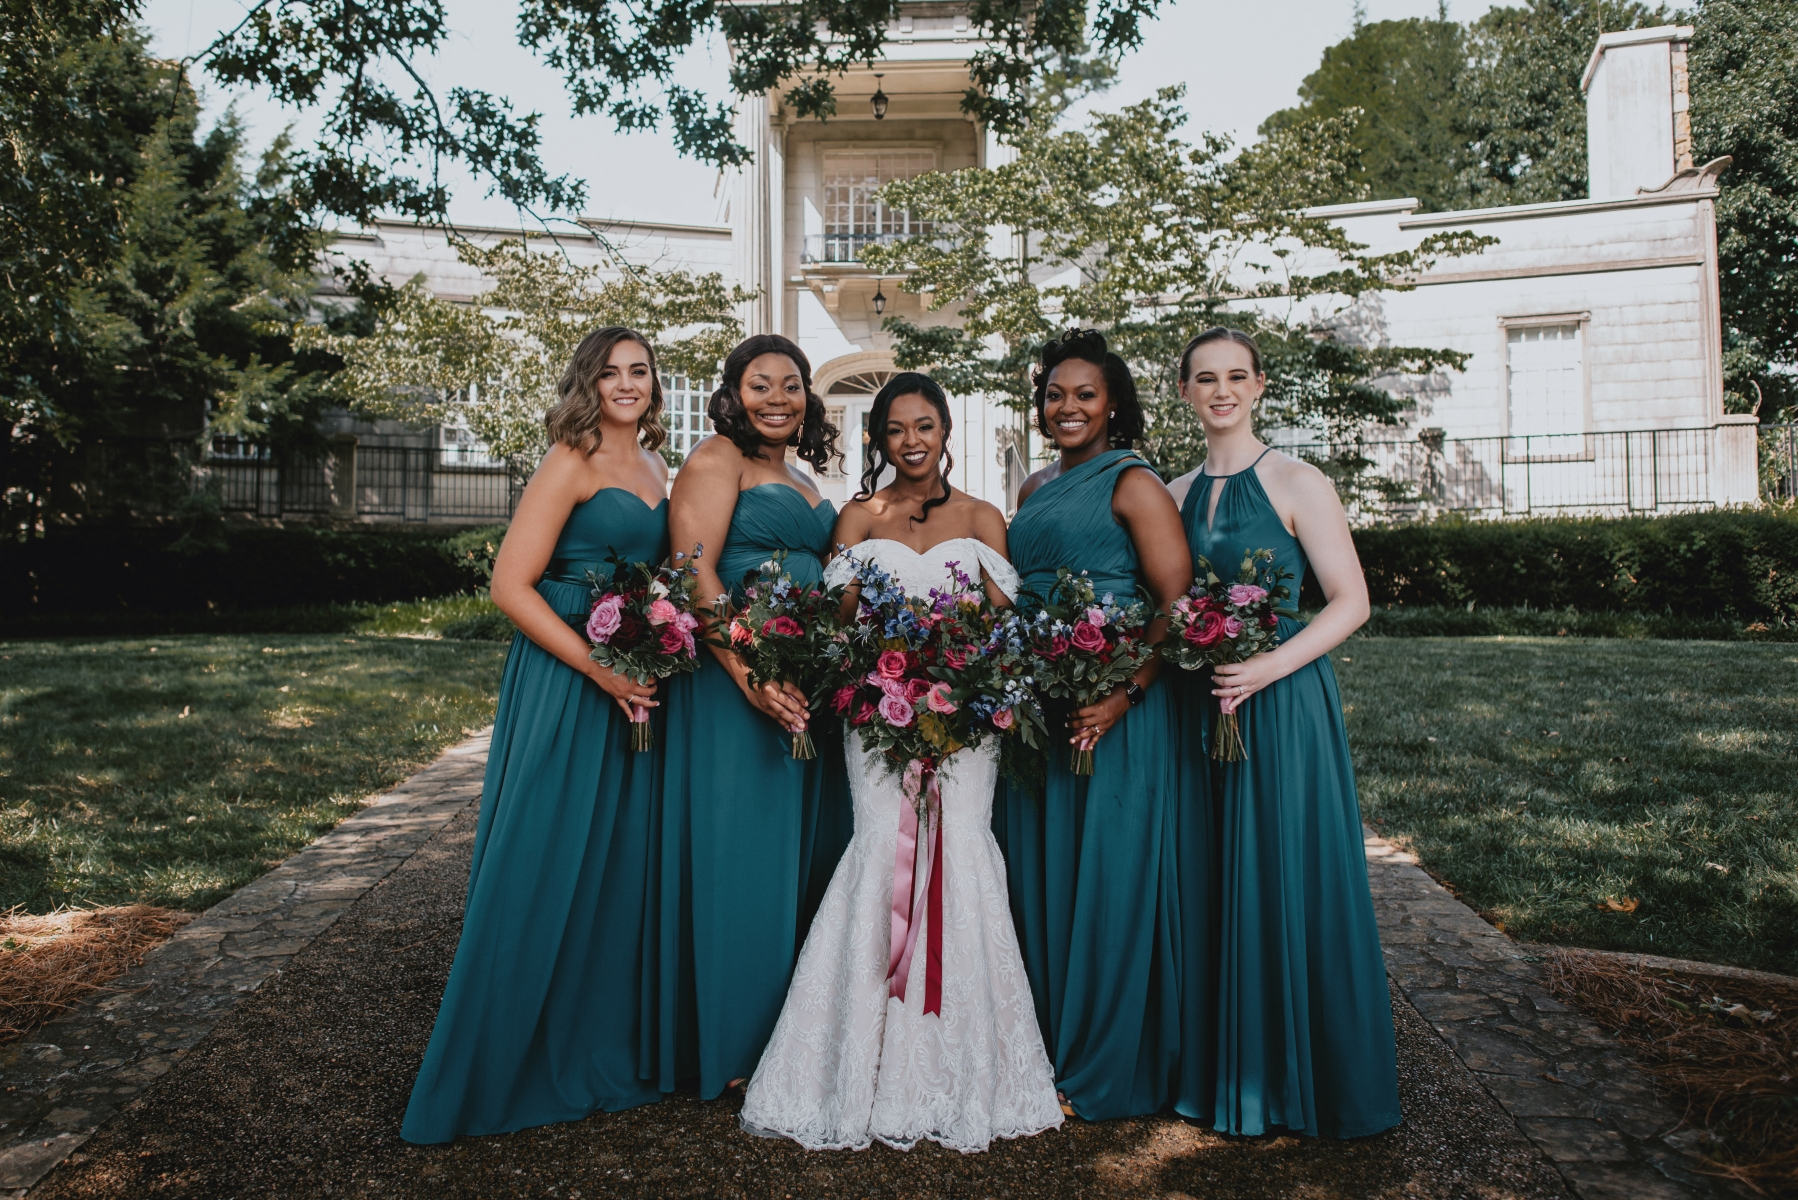 NashvilleWeddingCollection-214